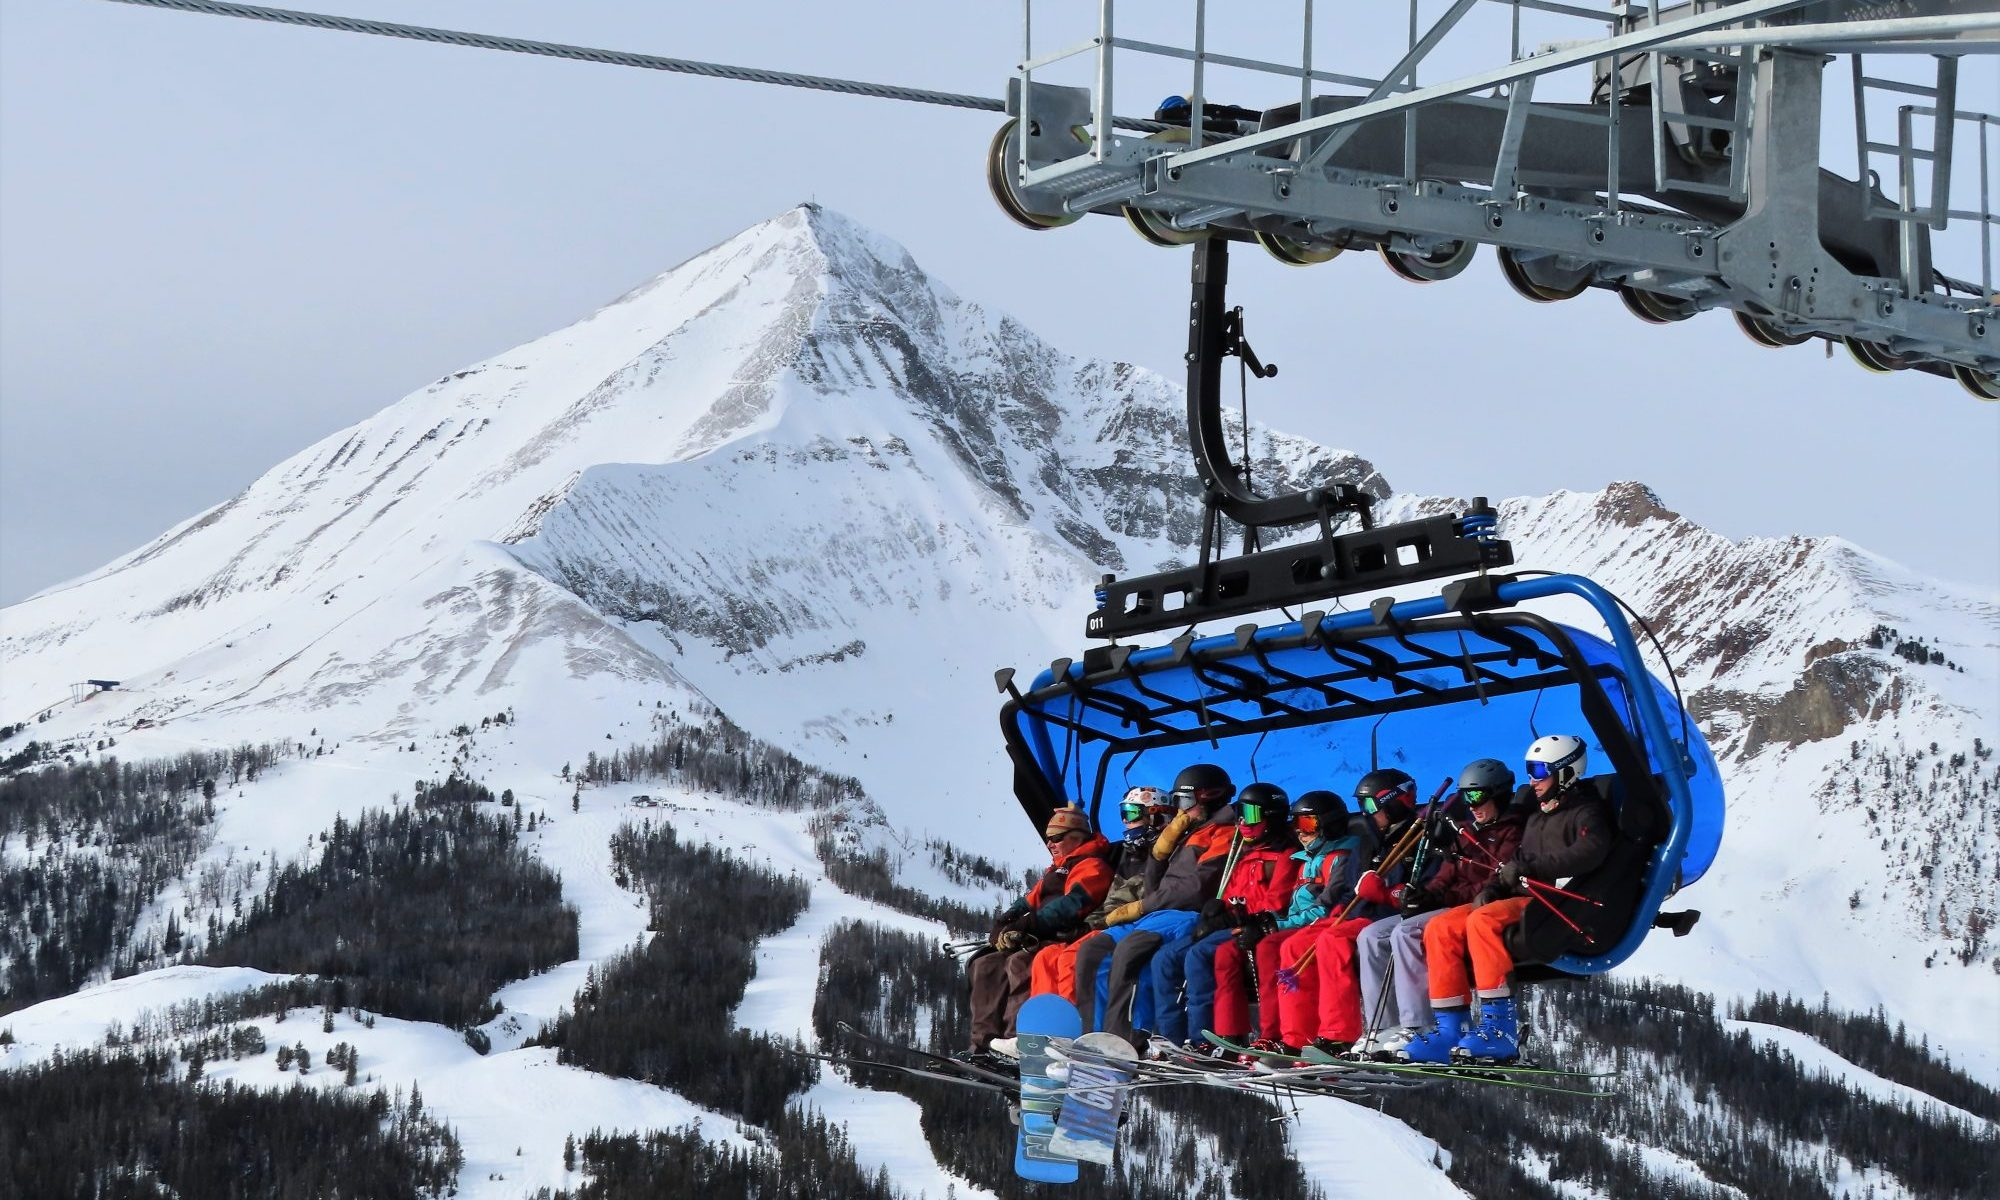 Big Sky Montana photo. World's Most Technologically-Advanced Chairlift Debuted at Big Sky Resort.